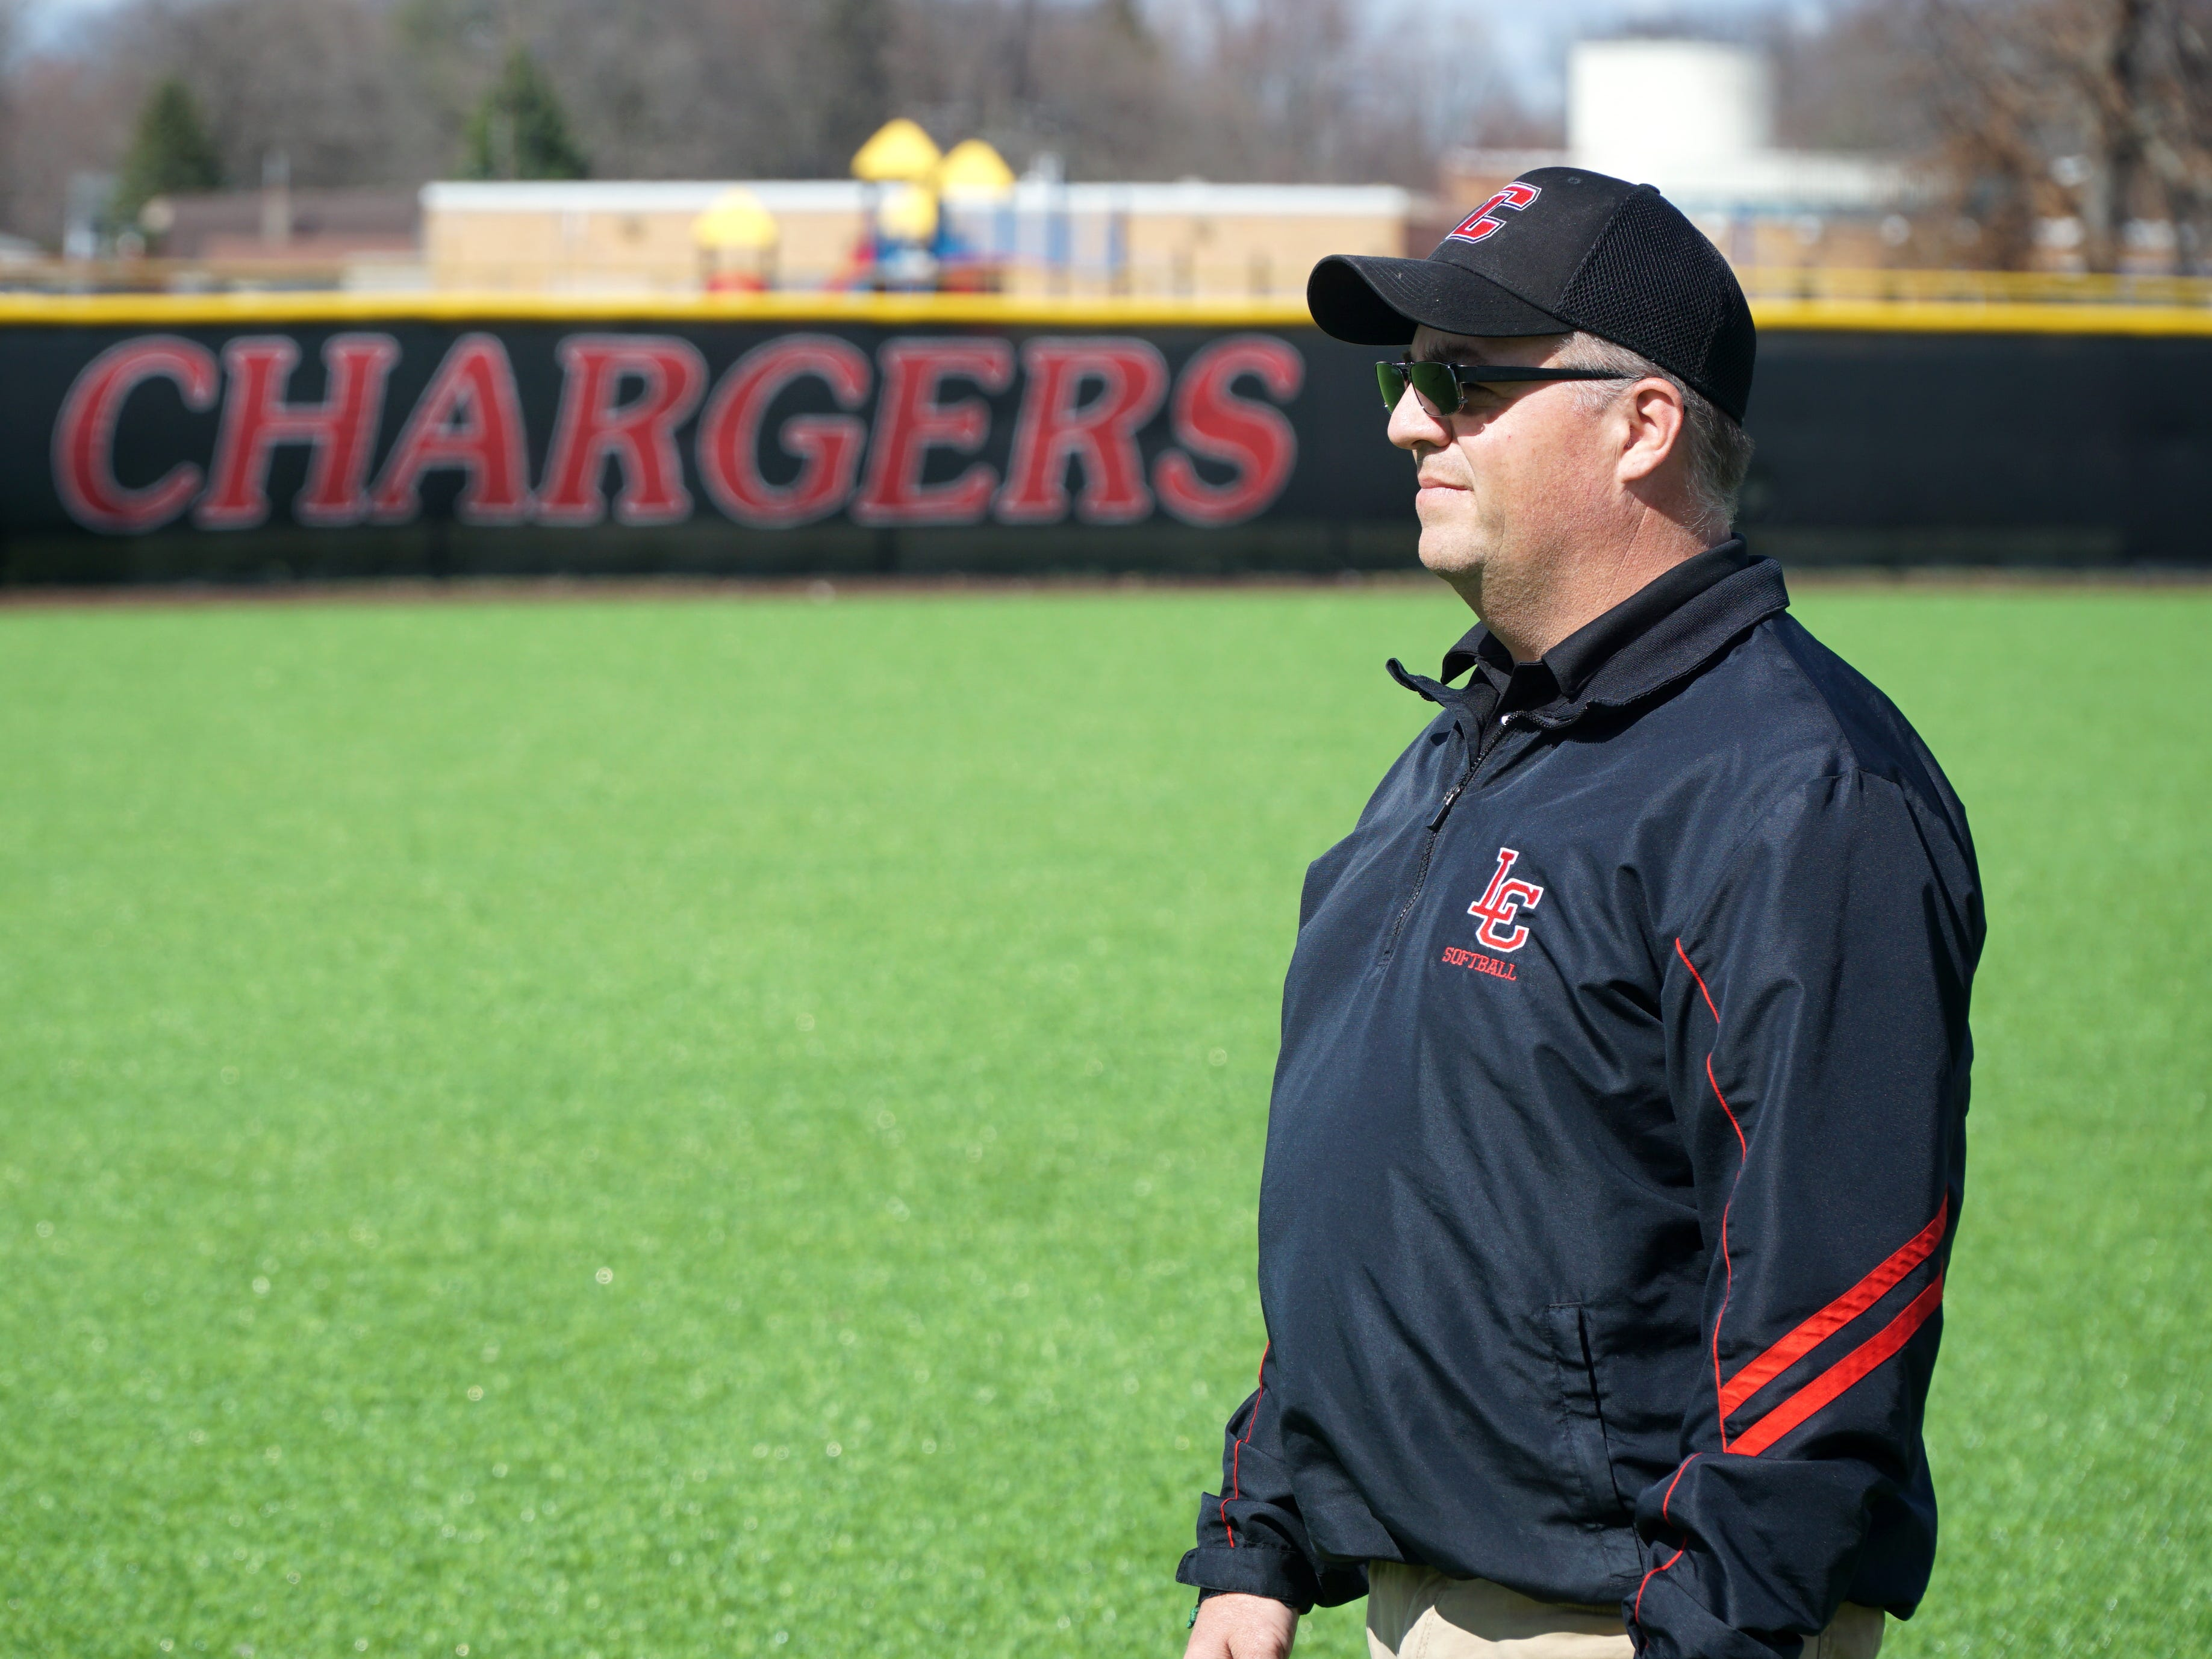 Churchill Charger softball coach Abe Vinitski watches his team practice on April 9, 2019.